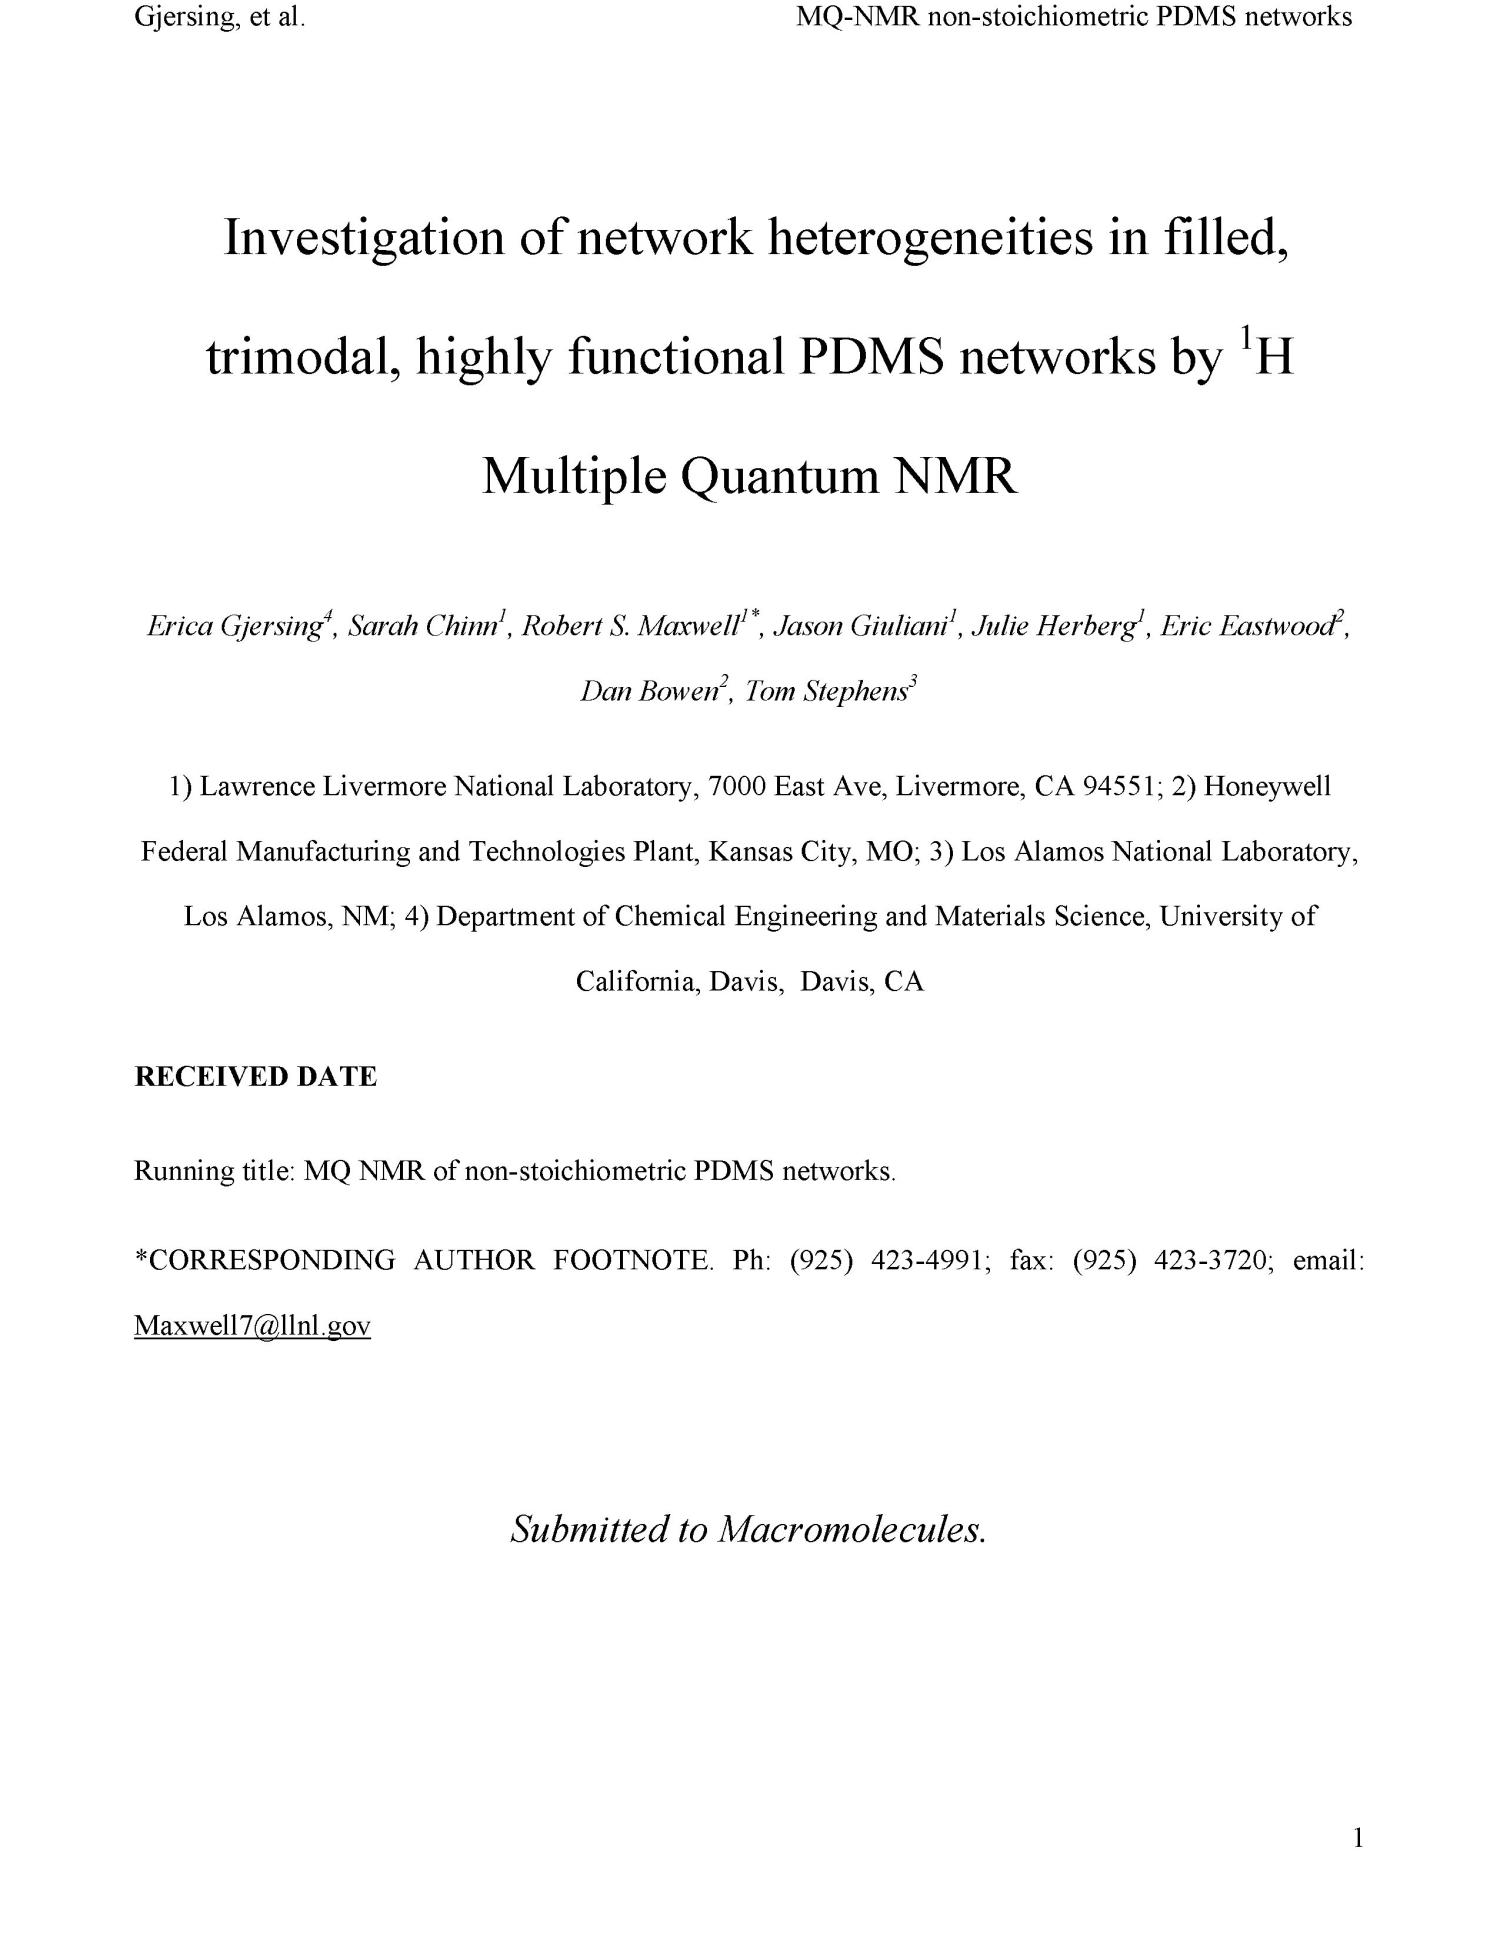 Investigation of network heterogeneities in filled, trimodal, highly functional PDMS networks by 1H Multiple Quantum NMR                                                                                                      [Sequence #]: 3 of 39